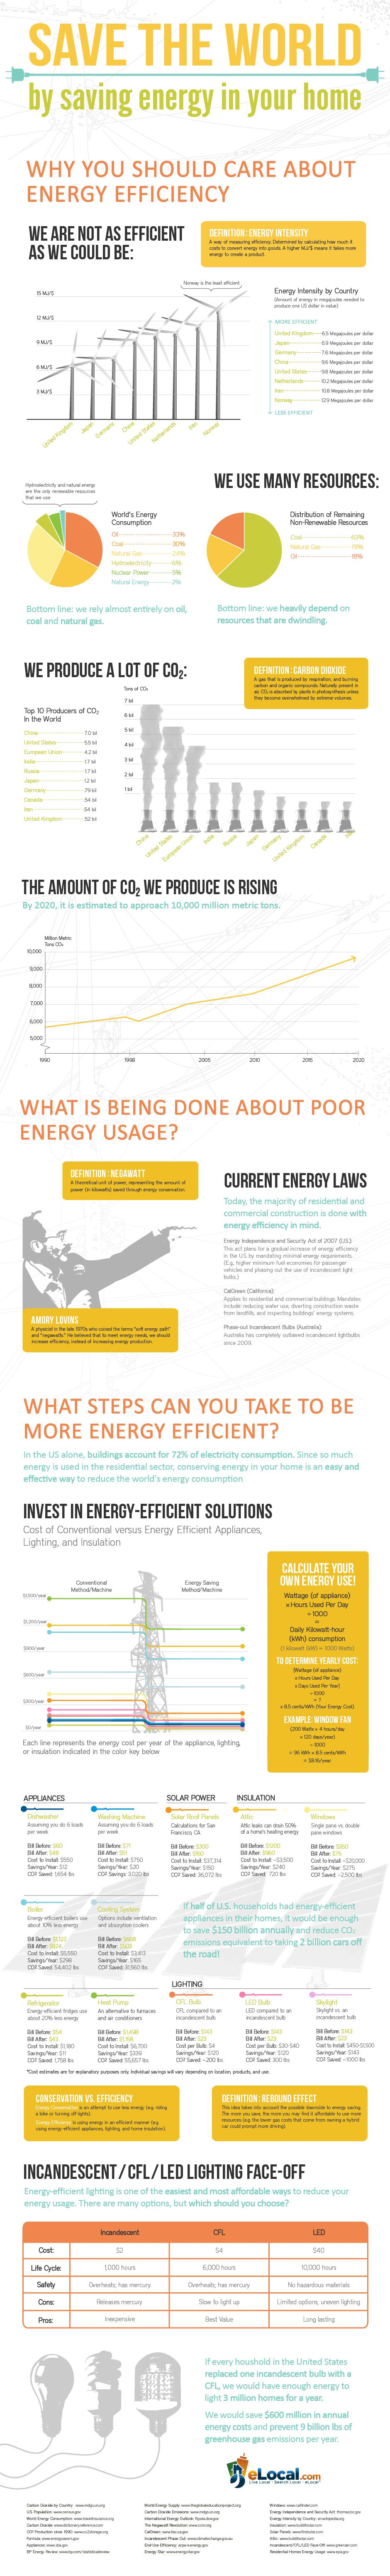 Save the World by saving energy in your home #infographic